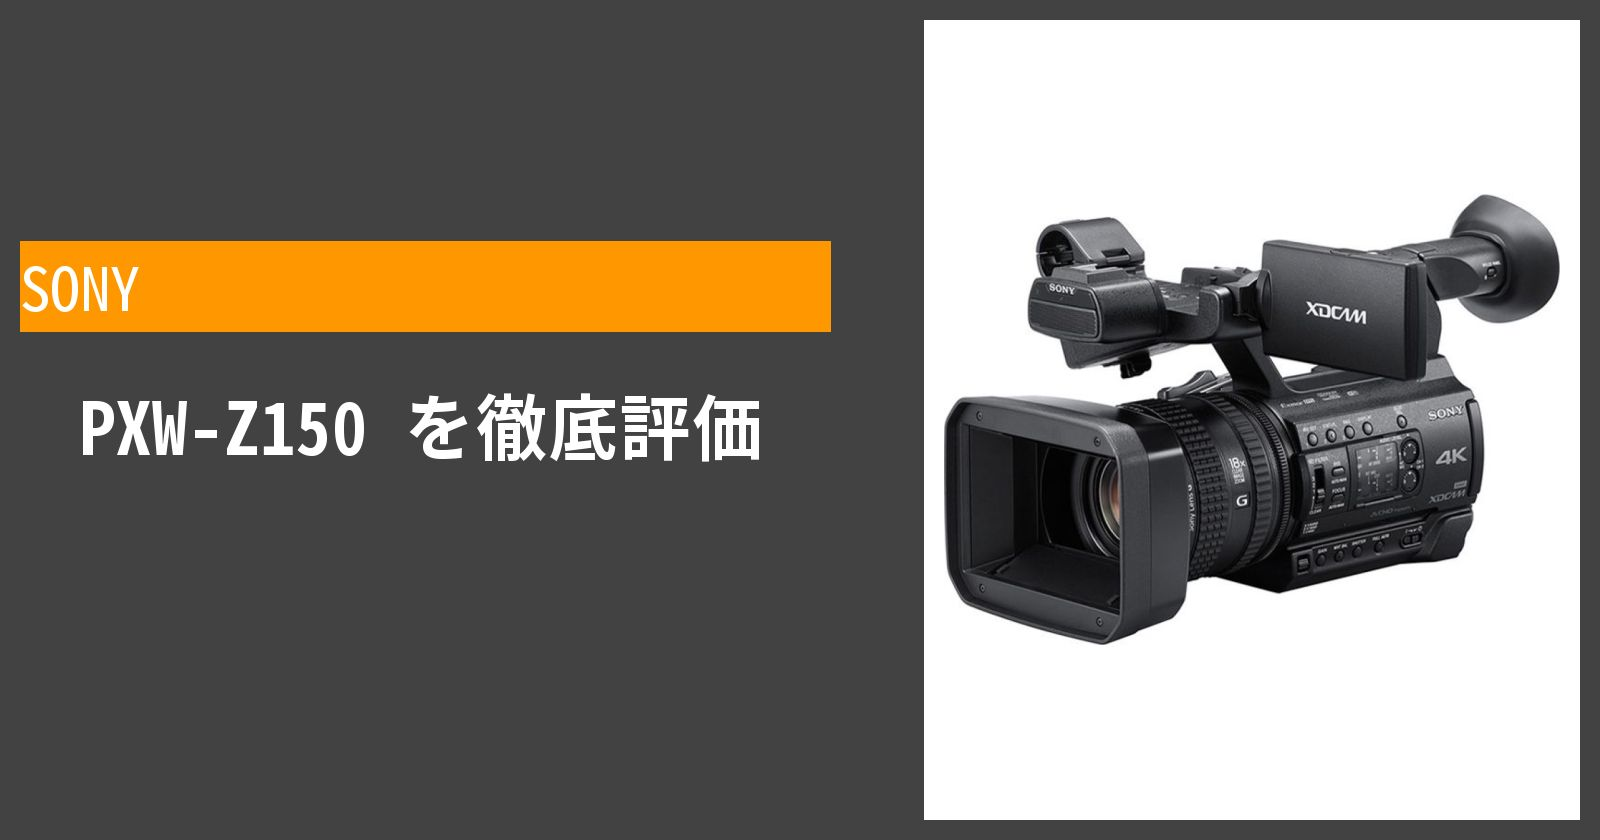 PXW-Z150を徹底評価